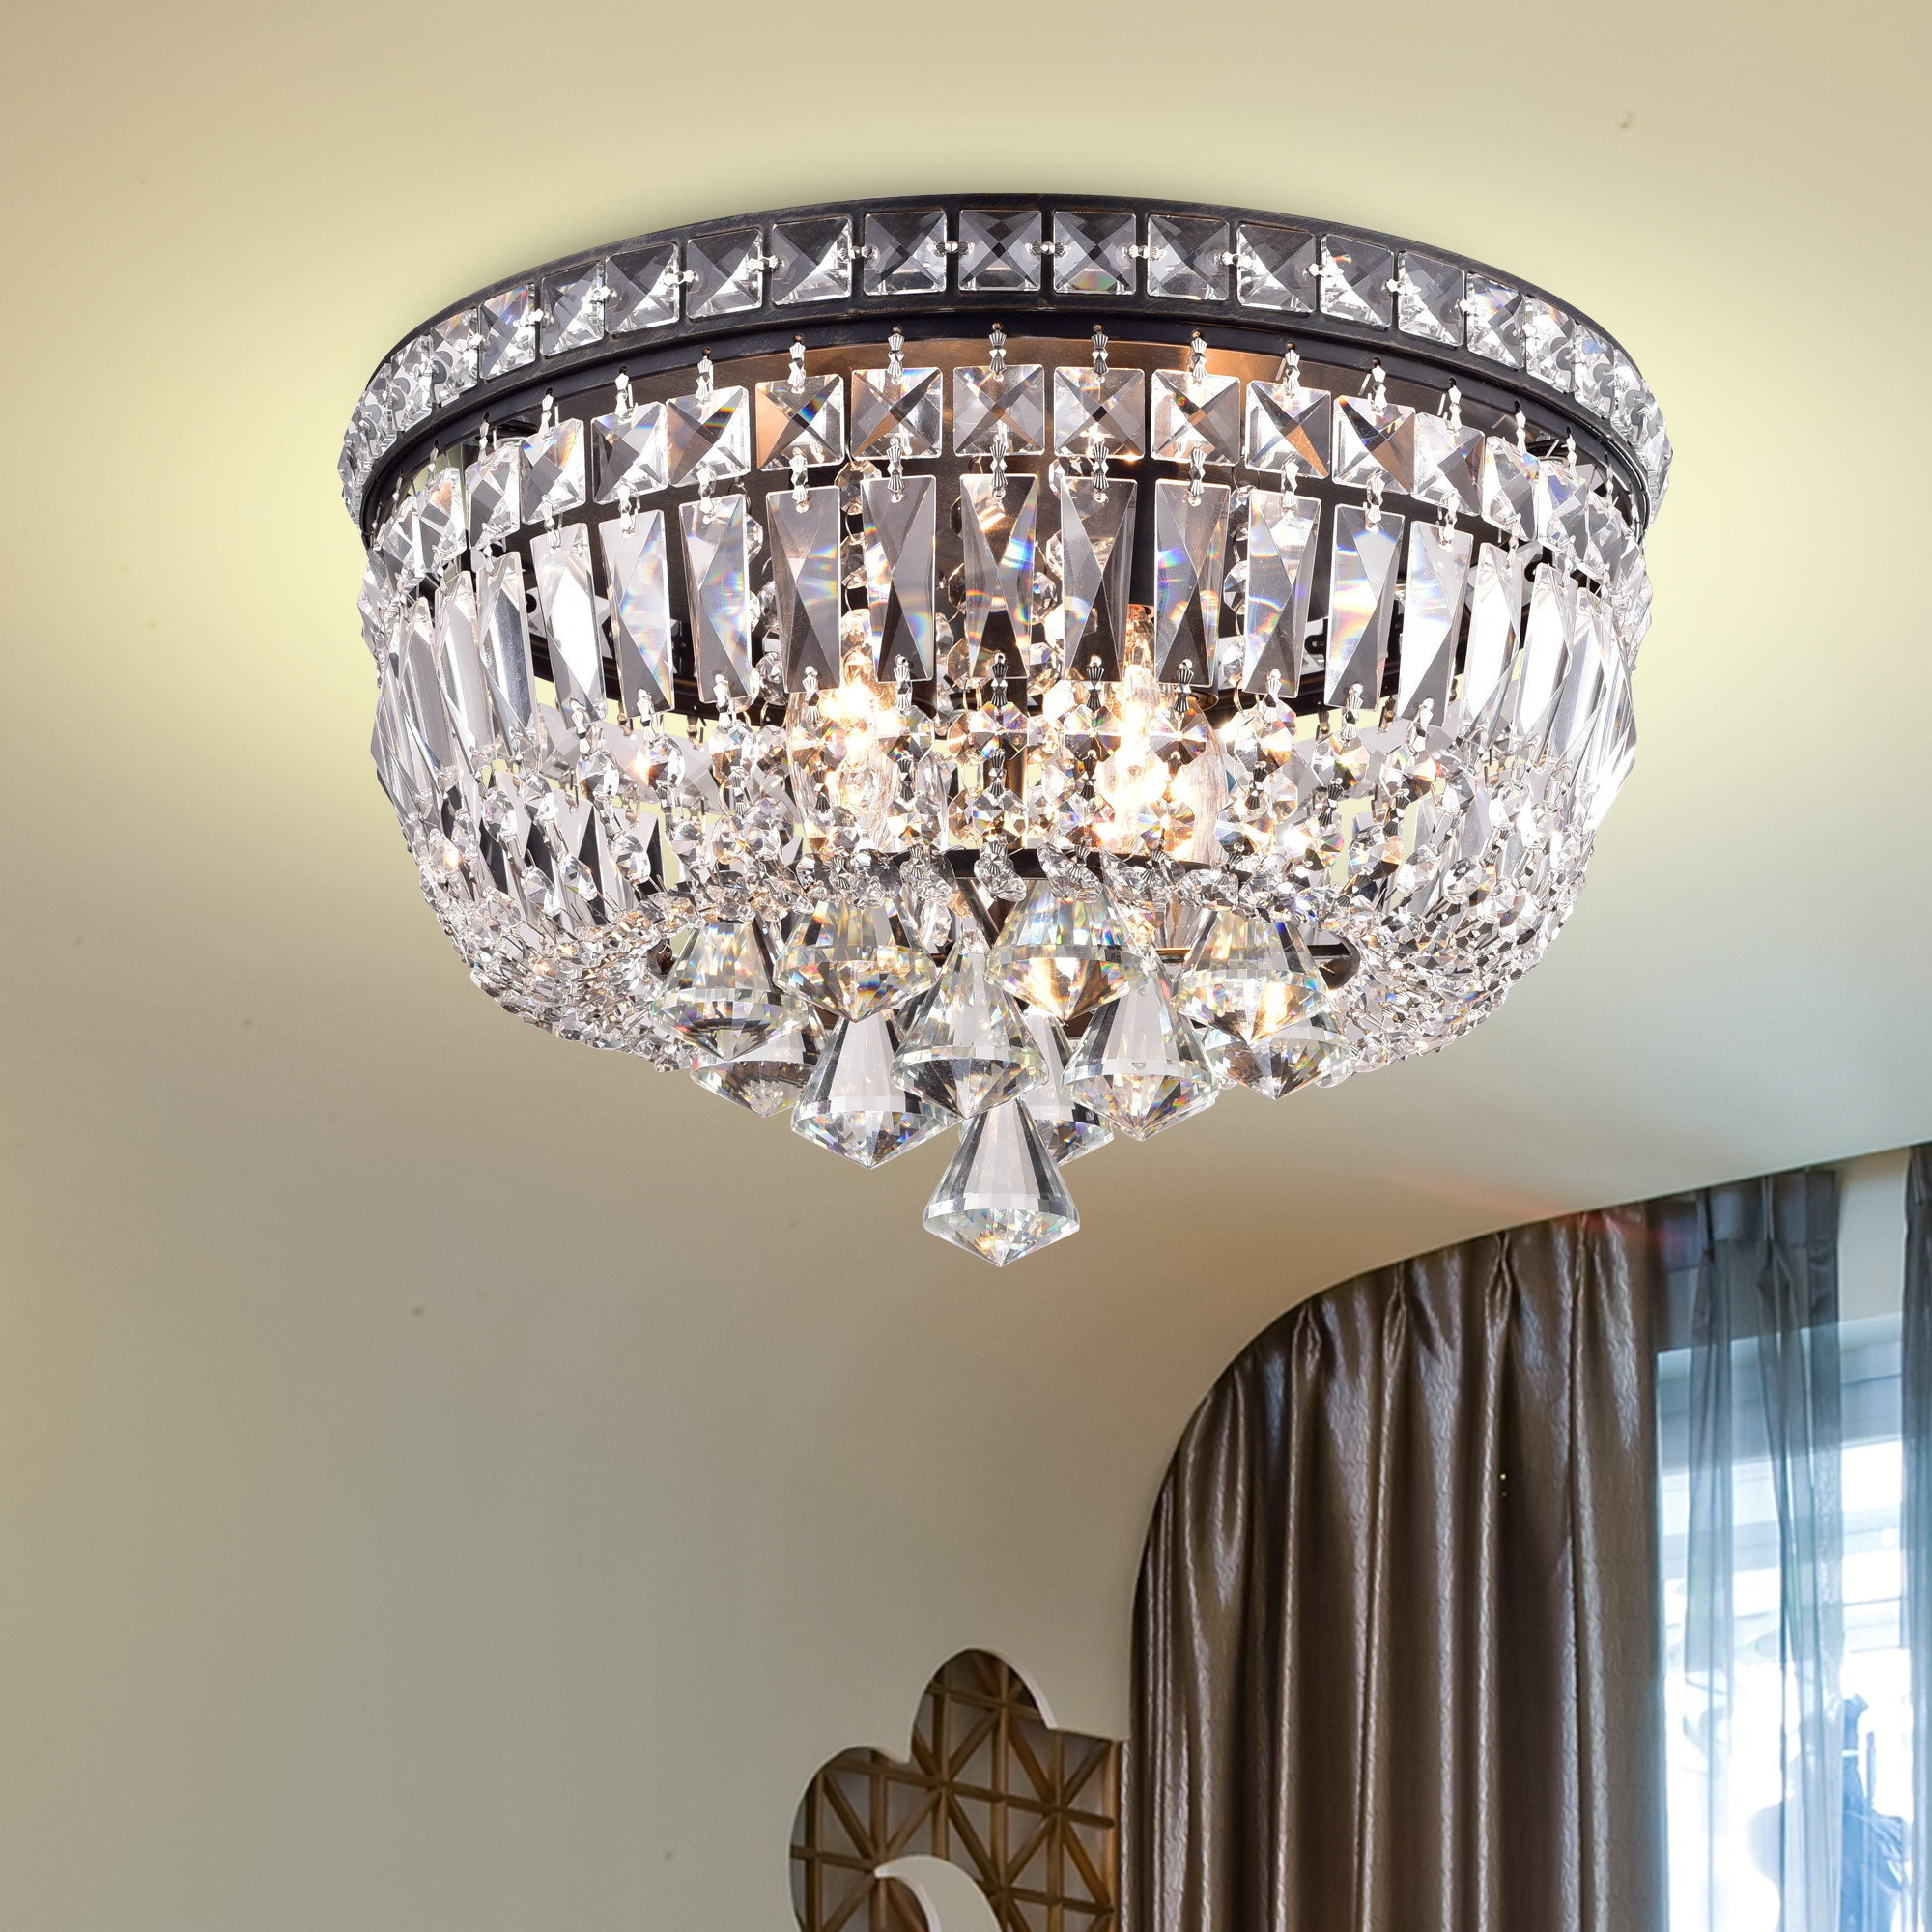 Elisa 4 light antique black and crystal flushmount chandelier elisa 4 light antique black and crystal flushmount chandelier free shipping today overstock 17762693 arubaitofo Images